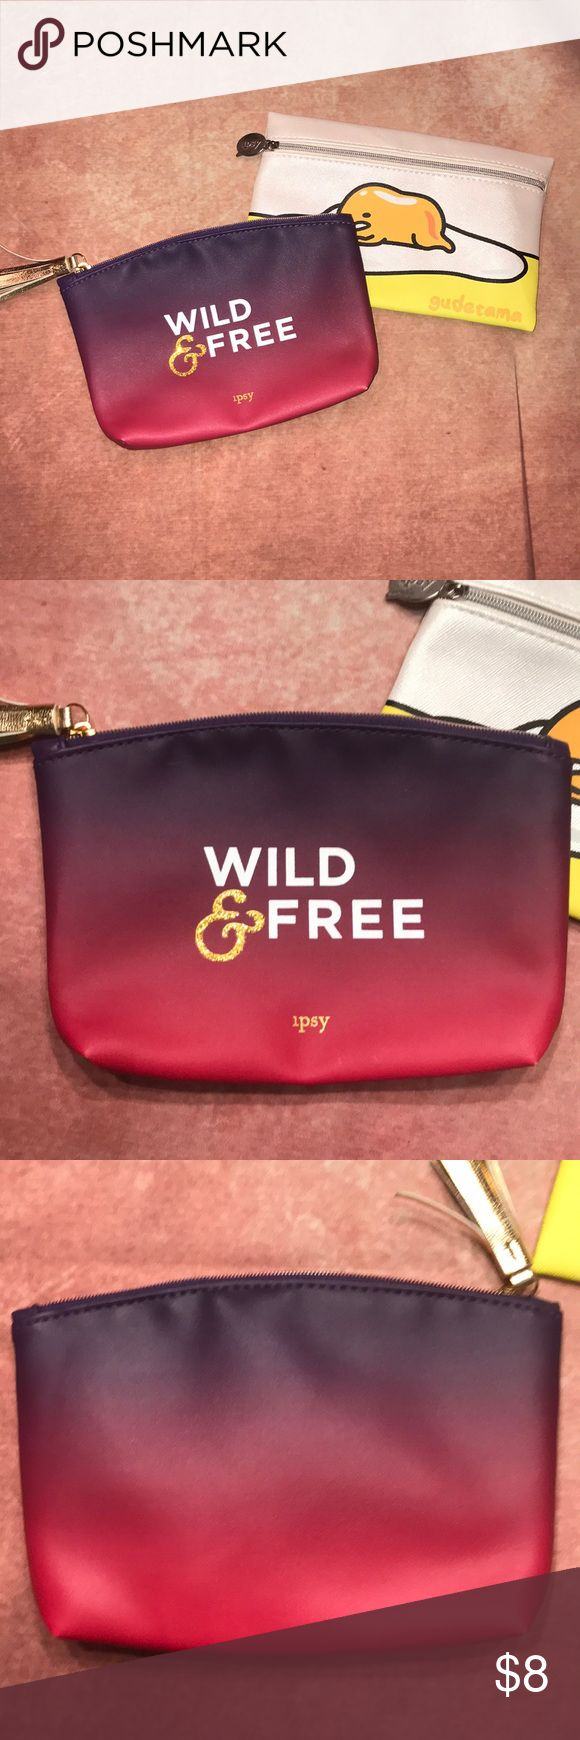 IPSY~Small Cosmetic Bags~ Lot of 2 Wild and Free and Gudetama by Sanrio. ipsy Bags Cosmetic Bags & Cases